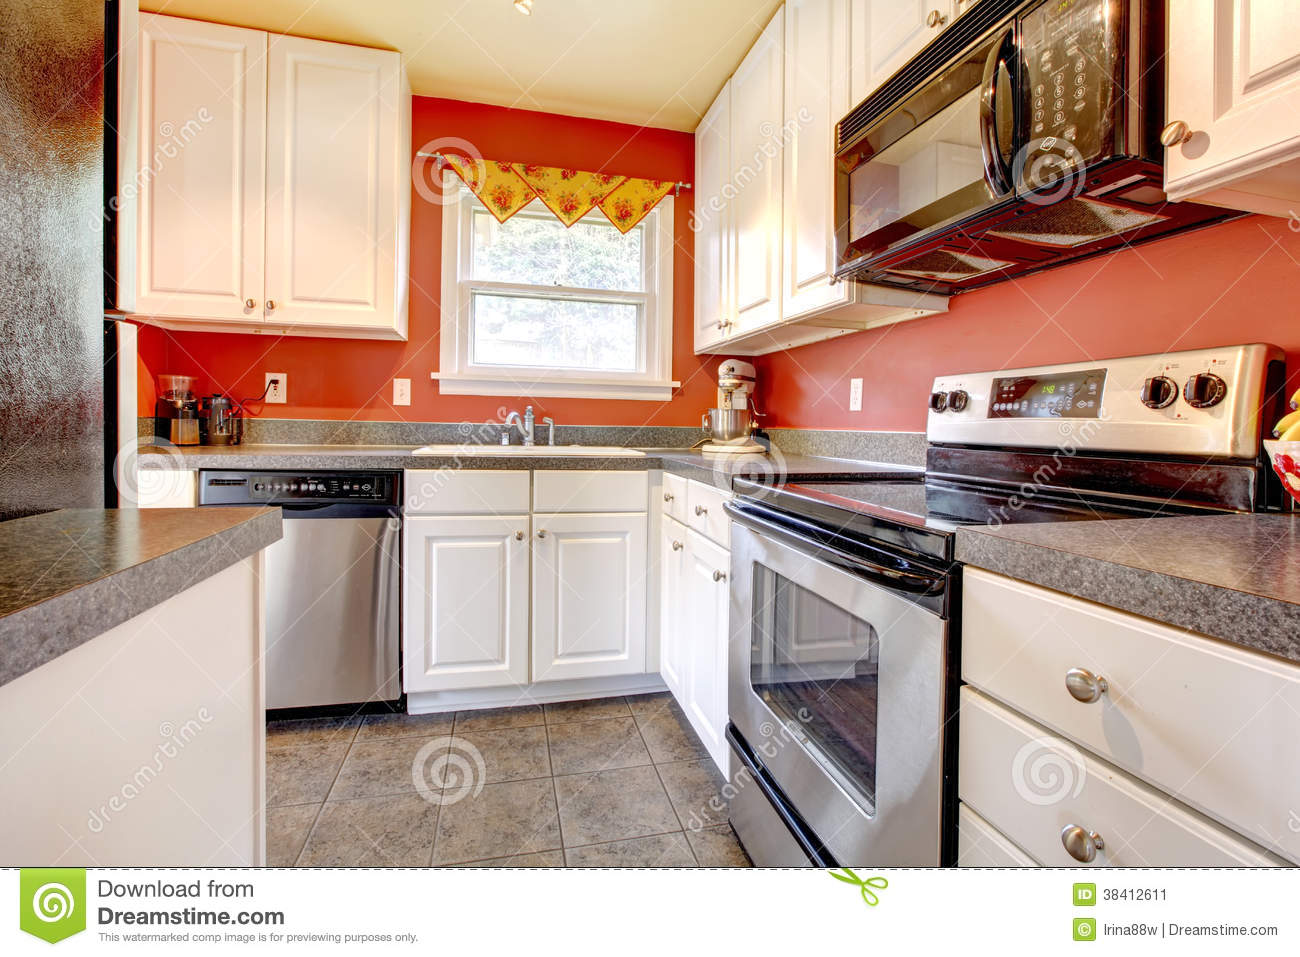 Cozy kitchen room with red wall and white cabinets stock for Kitchen ideas white cabinets red walls